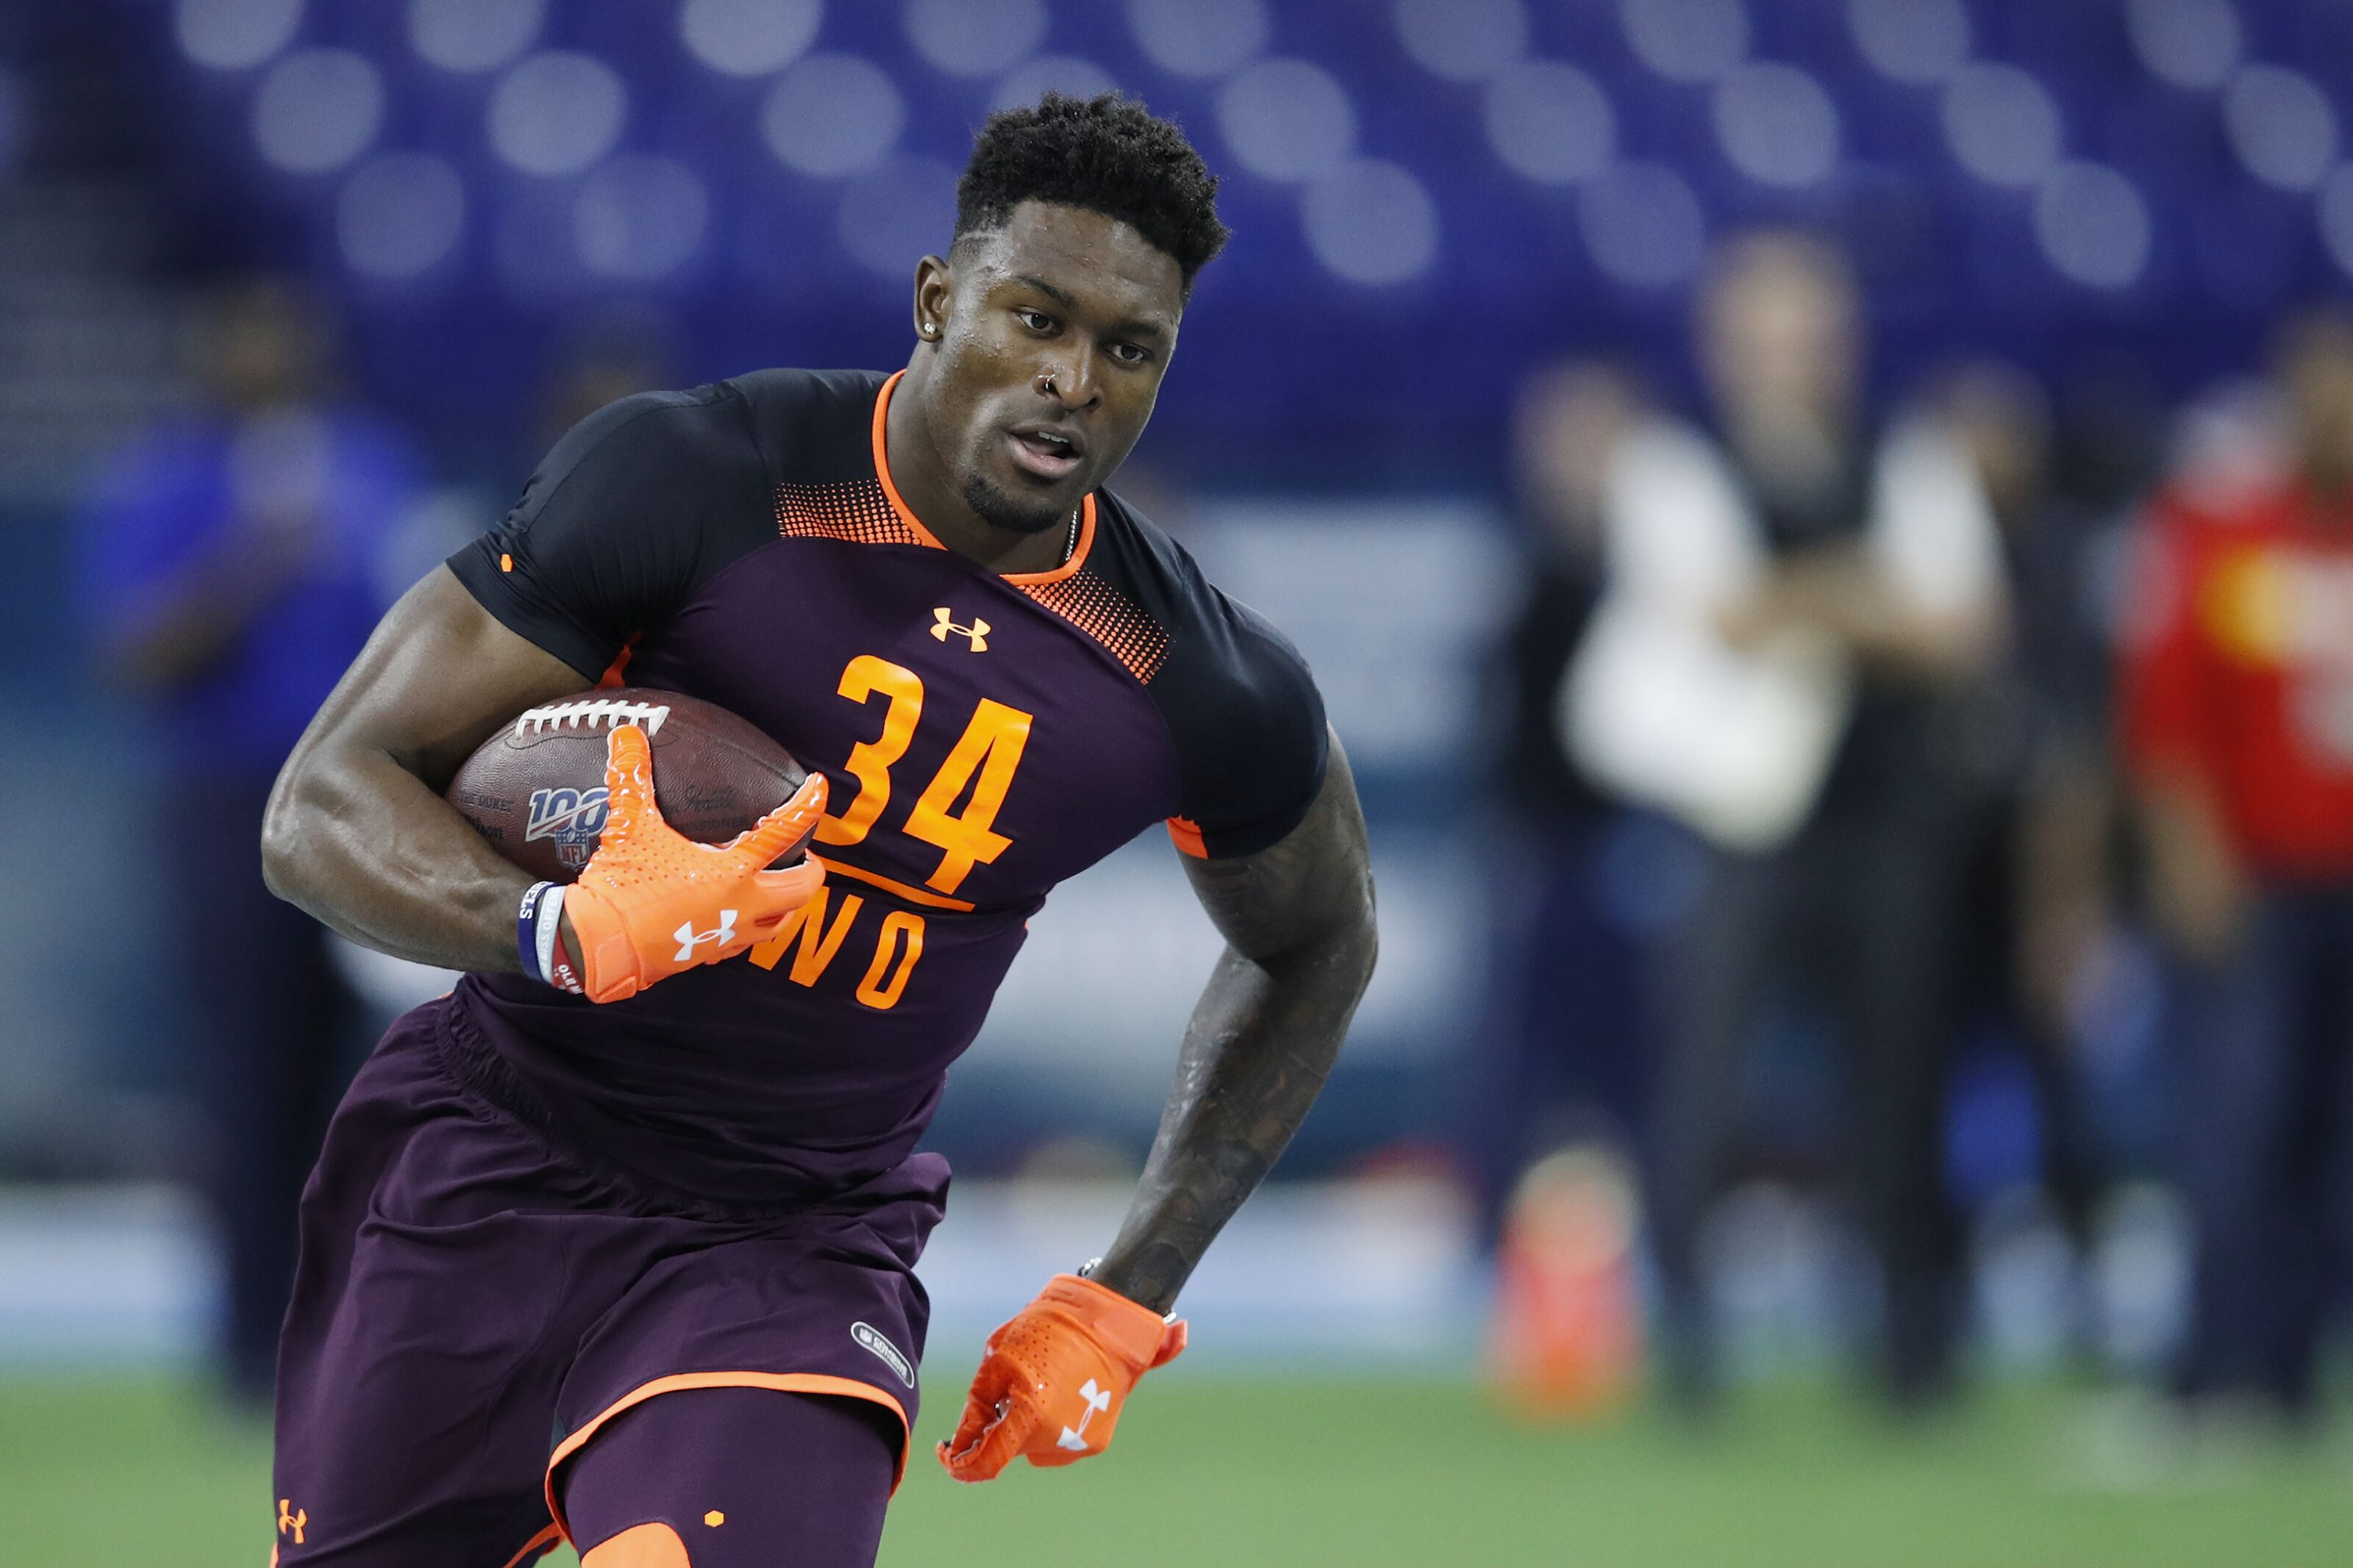 Seattle Seahawks: Can D.K. Metcalf be a true No. 1 receiver?